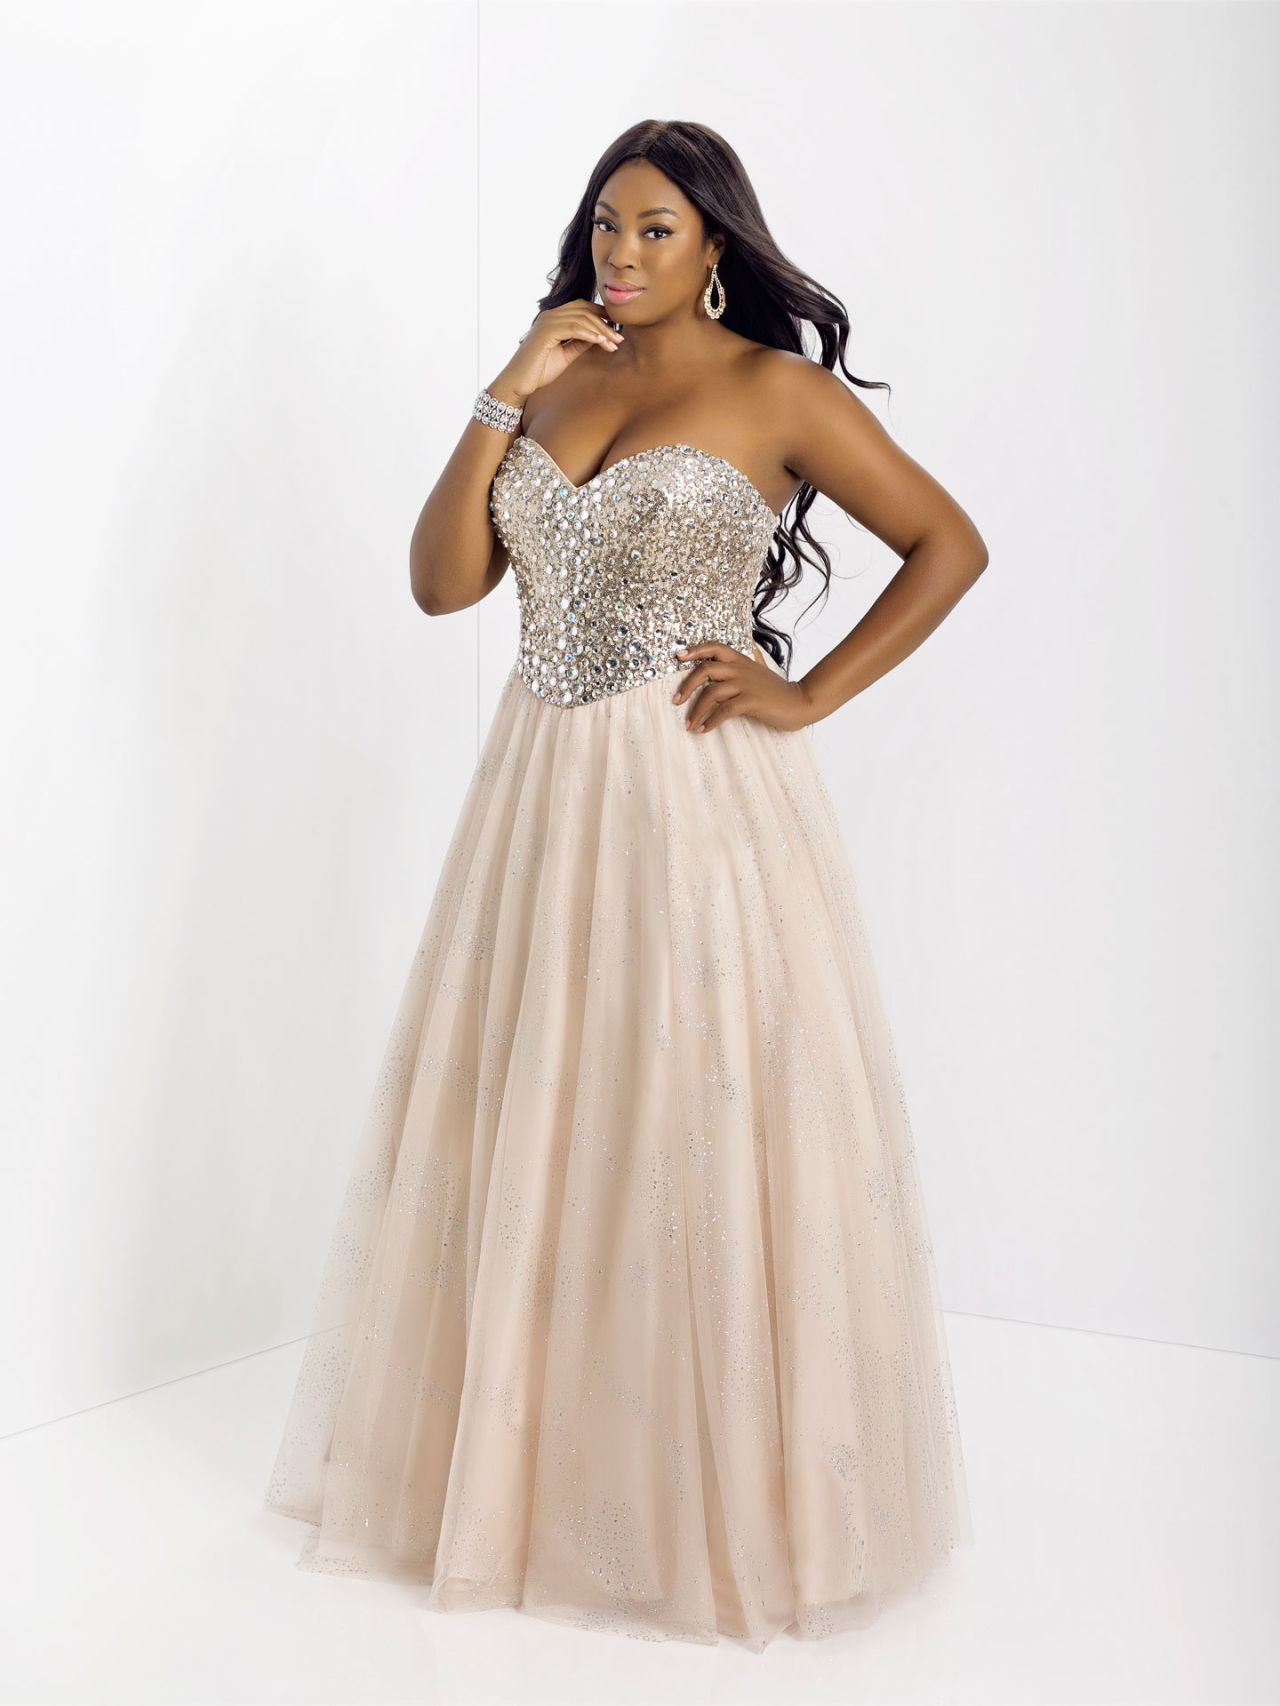 Cute Prom Dresses For Plus Size Girls Boutique Prom Dresses